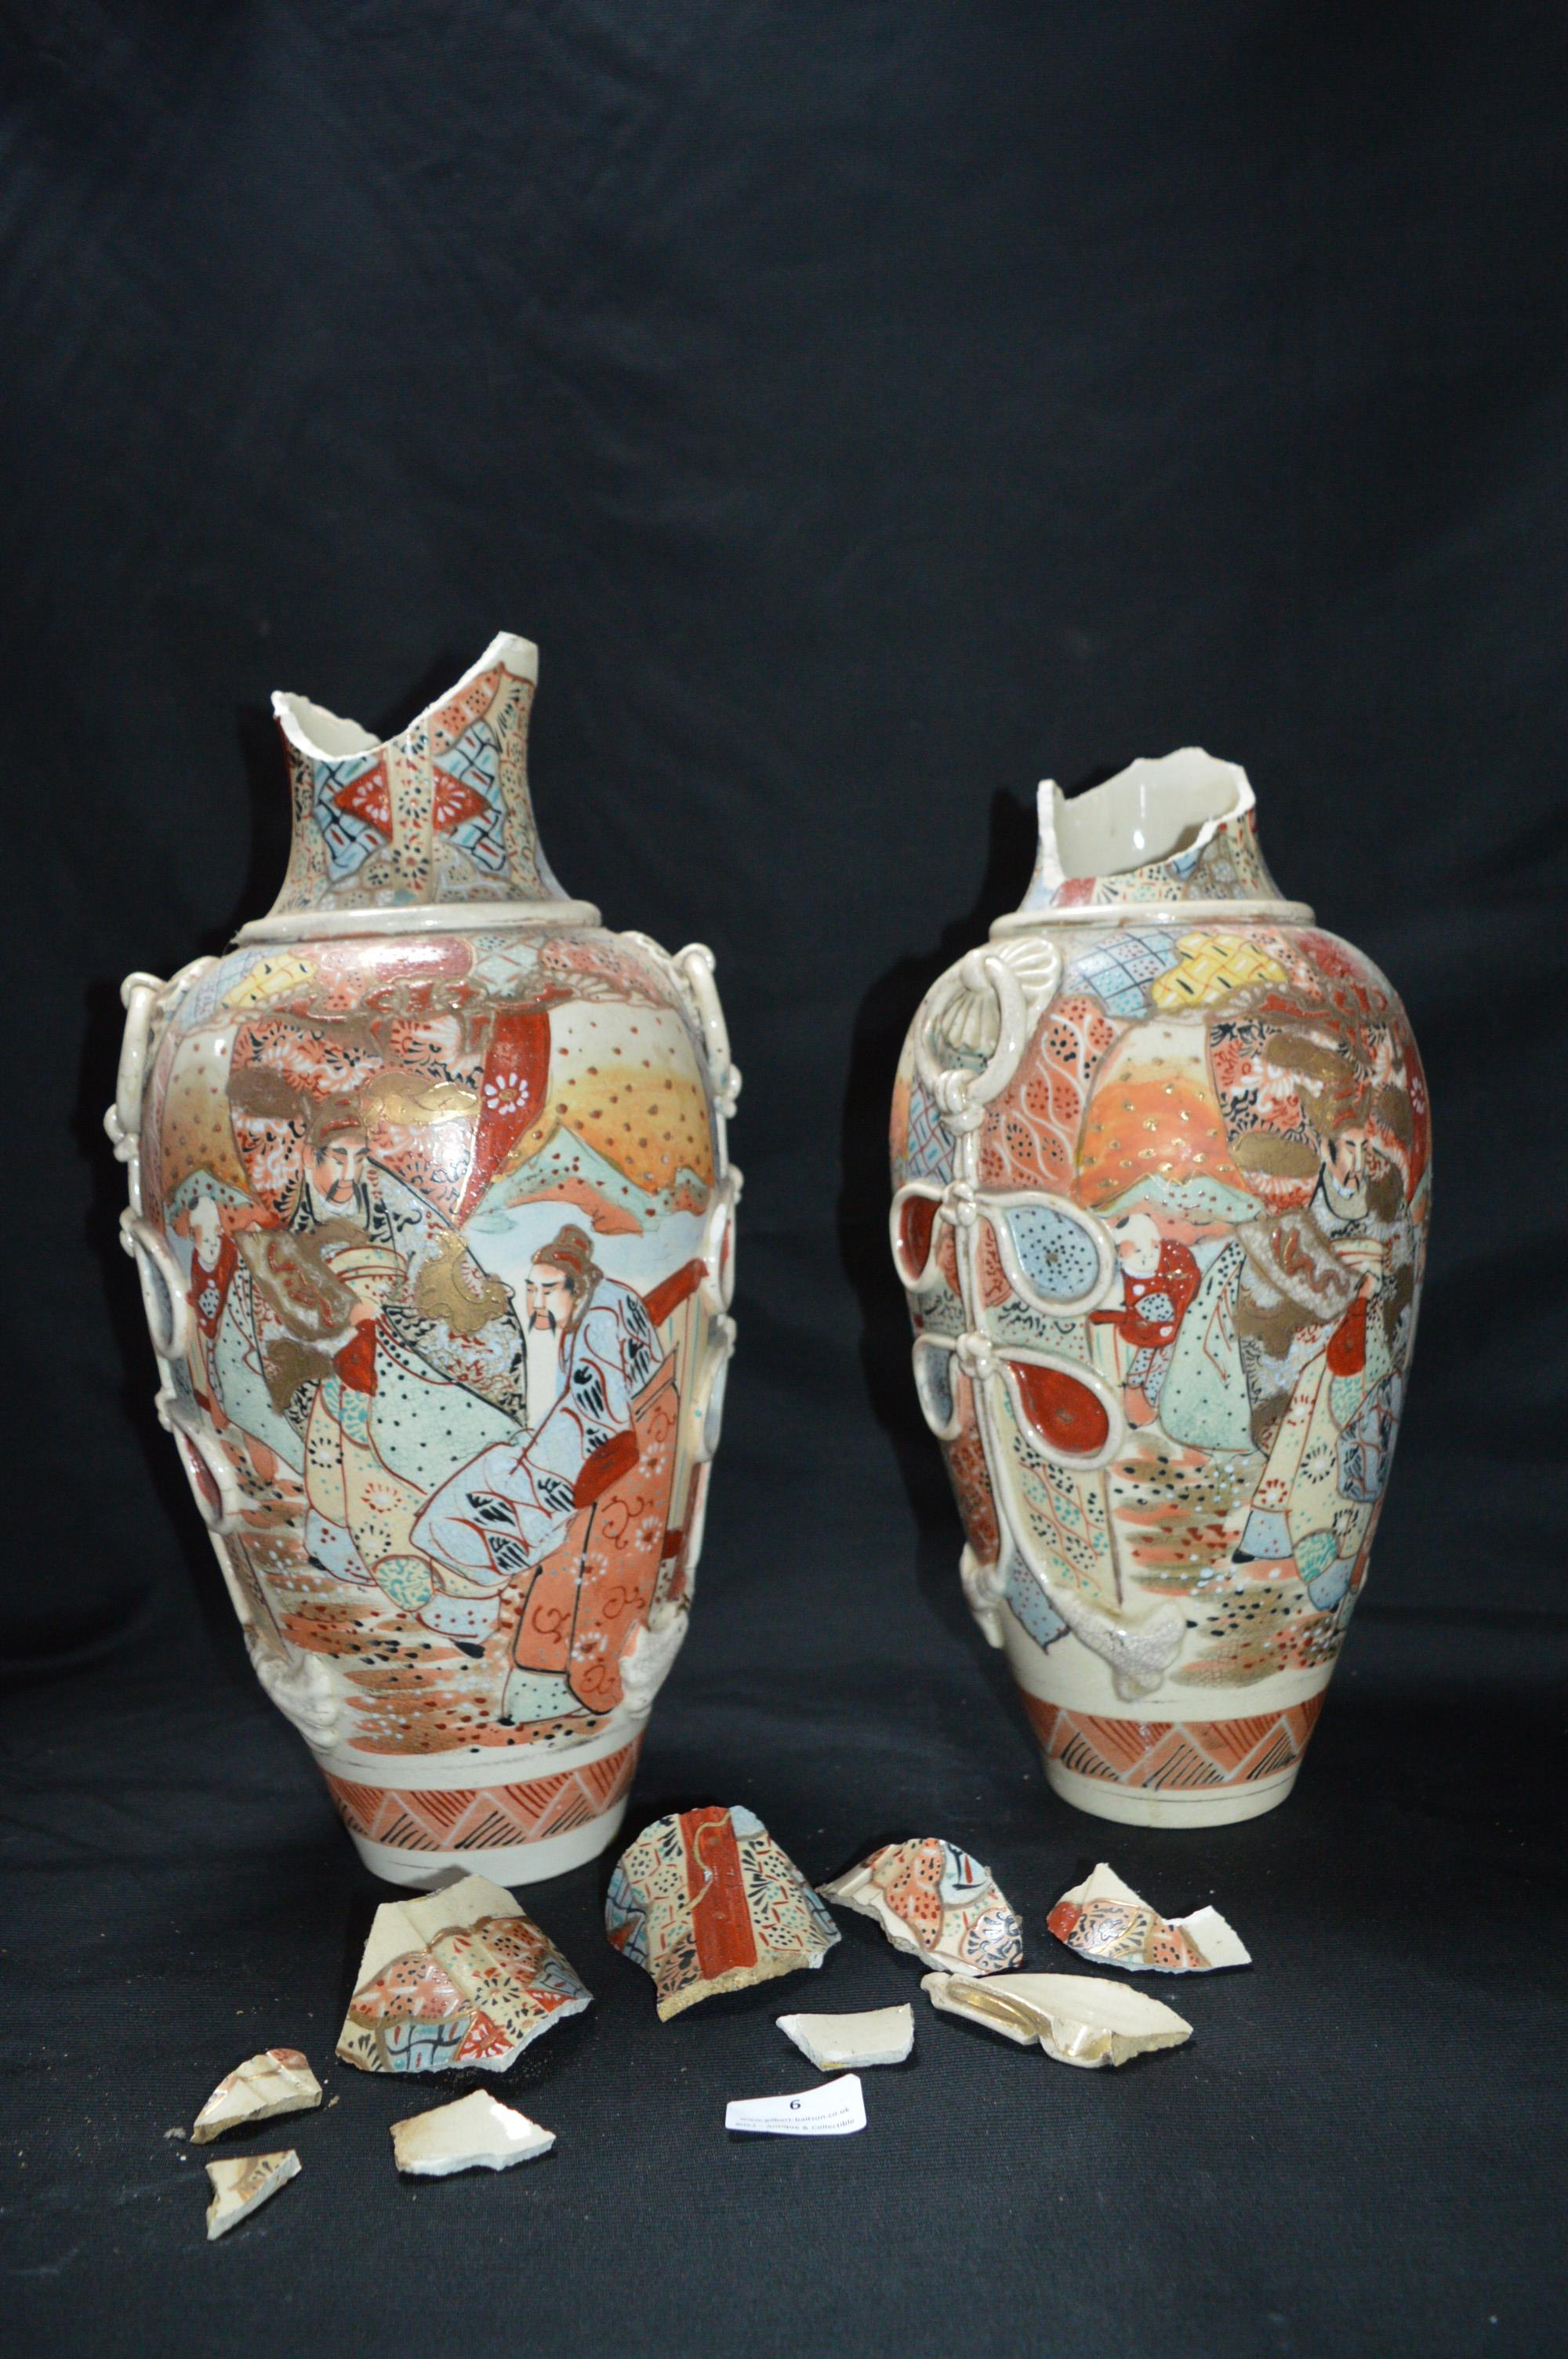 Lot 6 - Pair of Ornate Japanese Vases (AF)